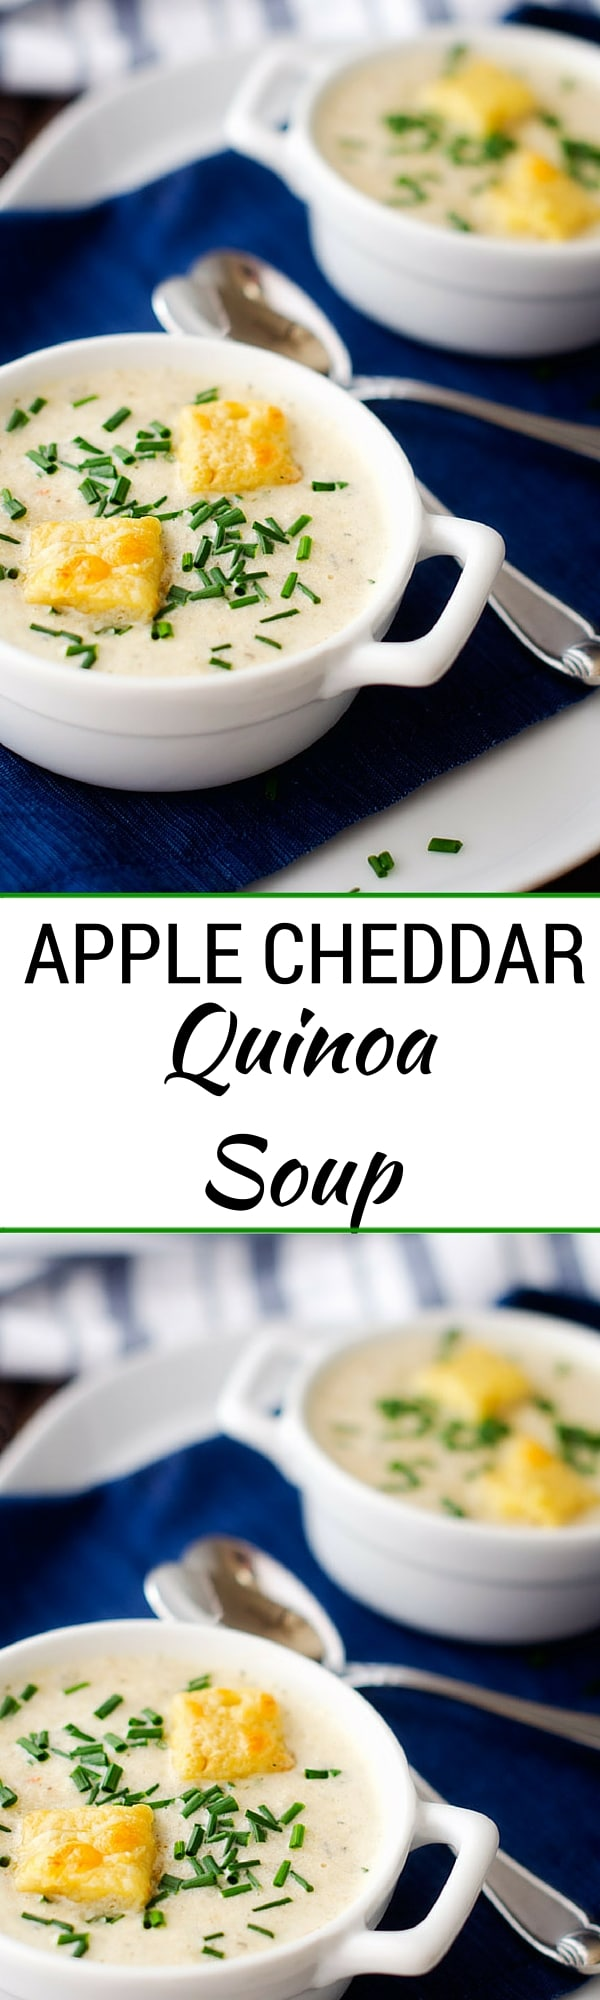 Quinoa Apple Cheddar Soup - This gluten free soup recipe is easy to make and the perfect solution to shake up your healthy meal plan.